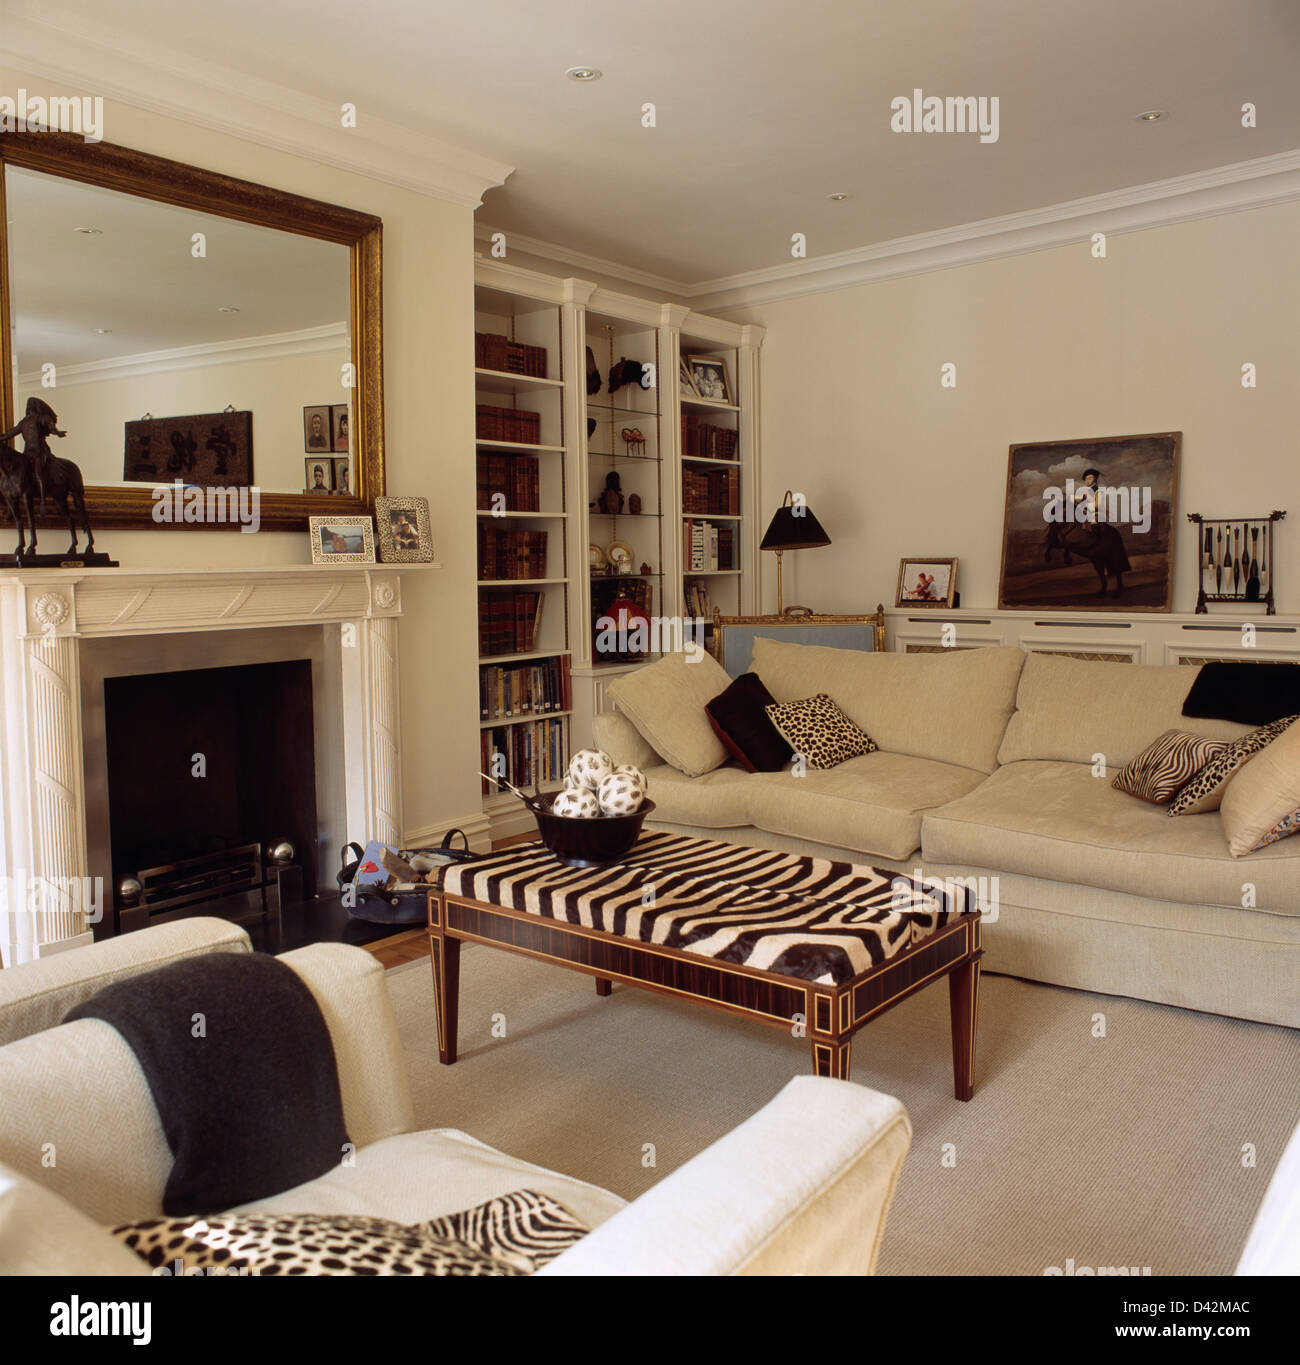 Zebra Print Stool And Cream Sofa In Elegant Living Room